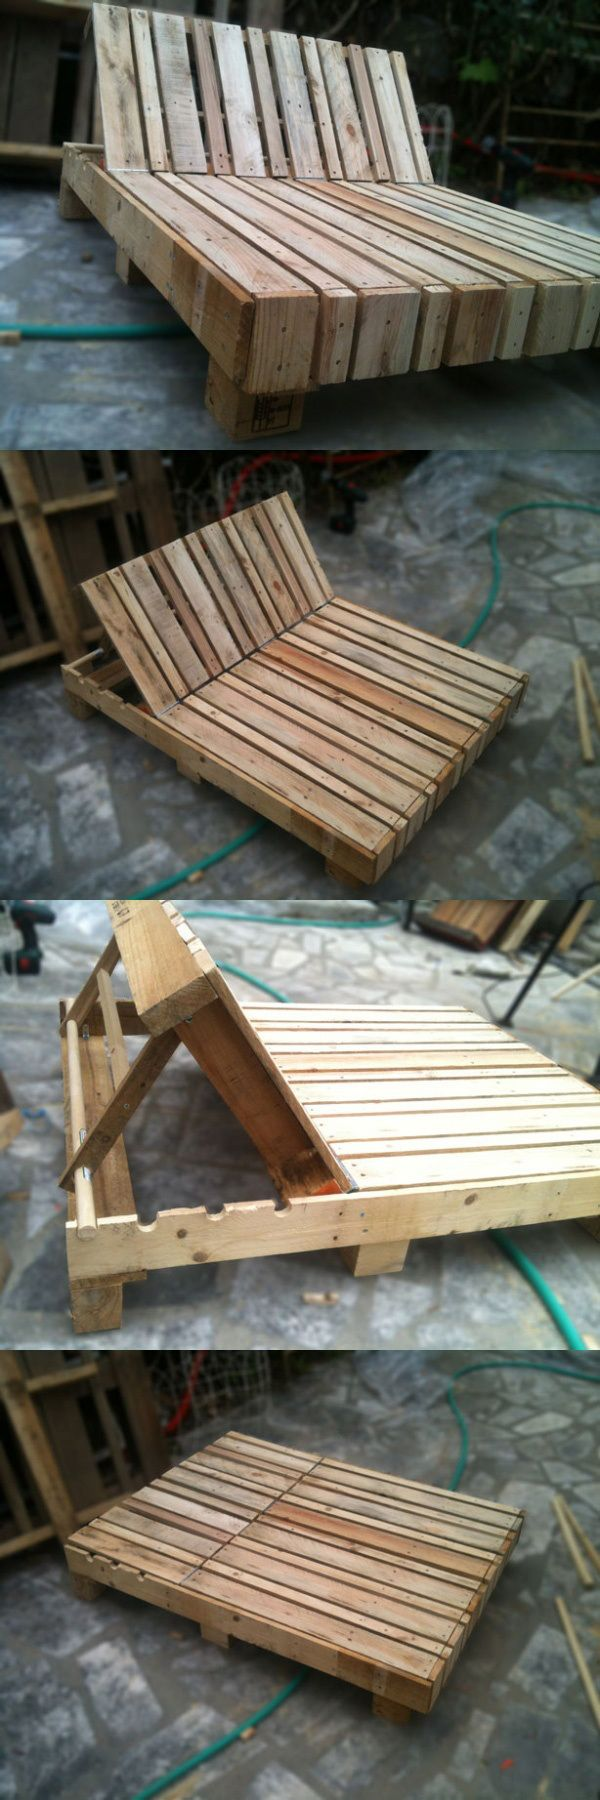 pallet deck chair project - great option to bland backyard lounge chairs and we have access to soooo many pallets!